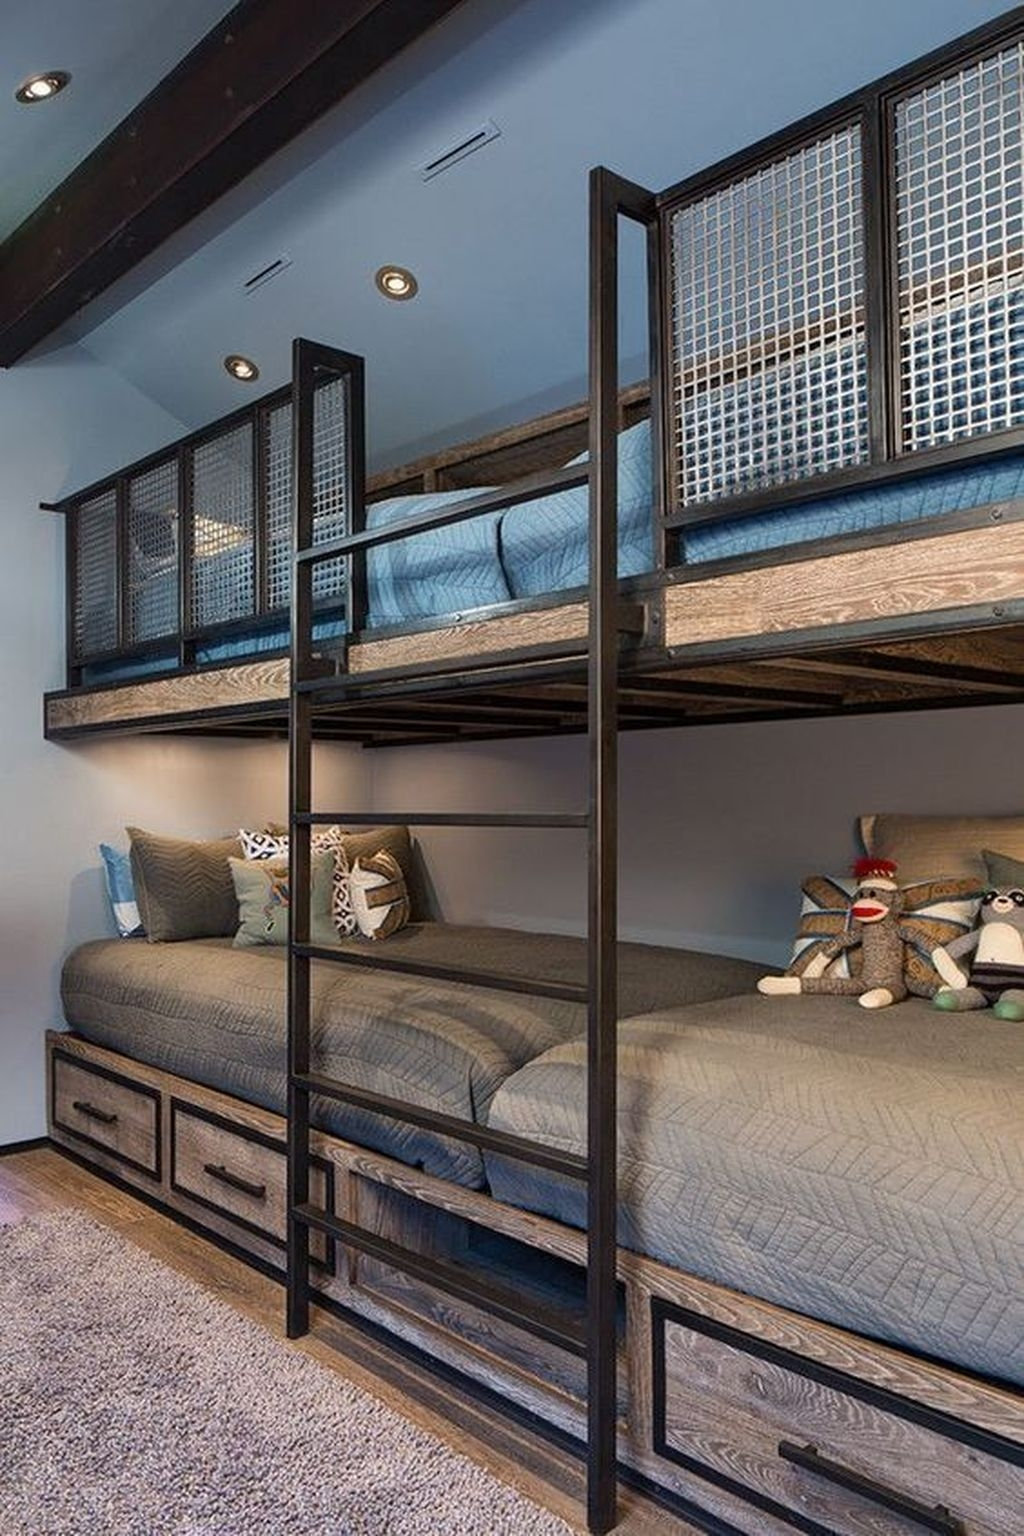 Adorable Bedroom Kids Design Ideas That Looks So Funny 24